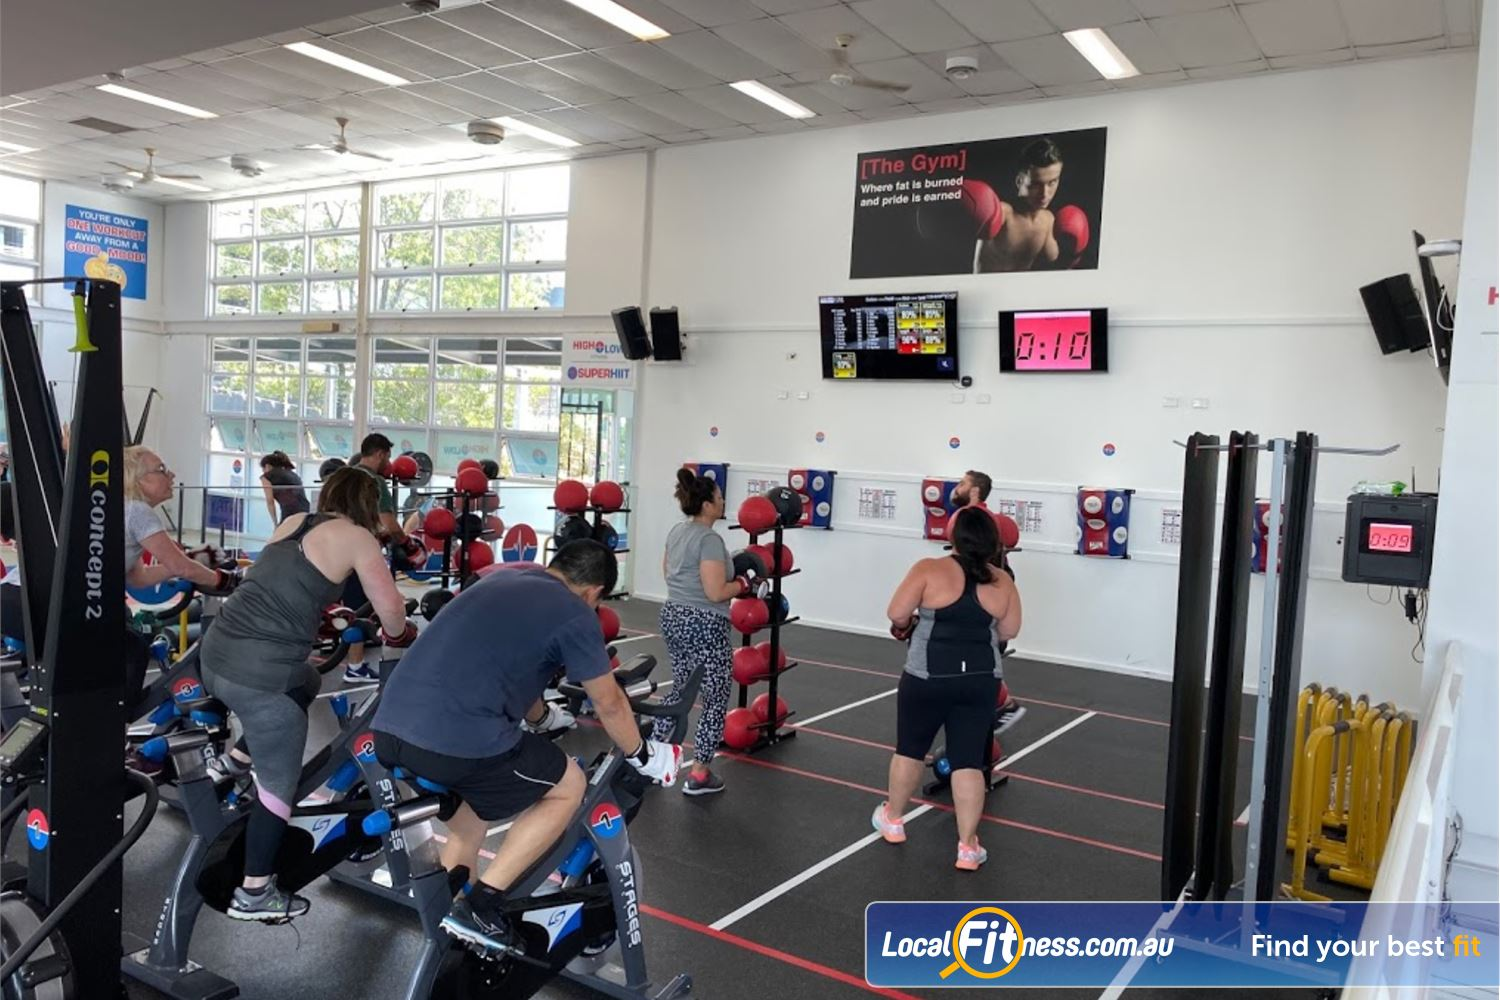 North Ryde Fitness & Aquatic North Ryde Our team has been providing Corporate Wellness programs for over 10 years.